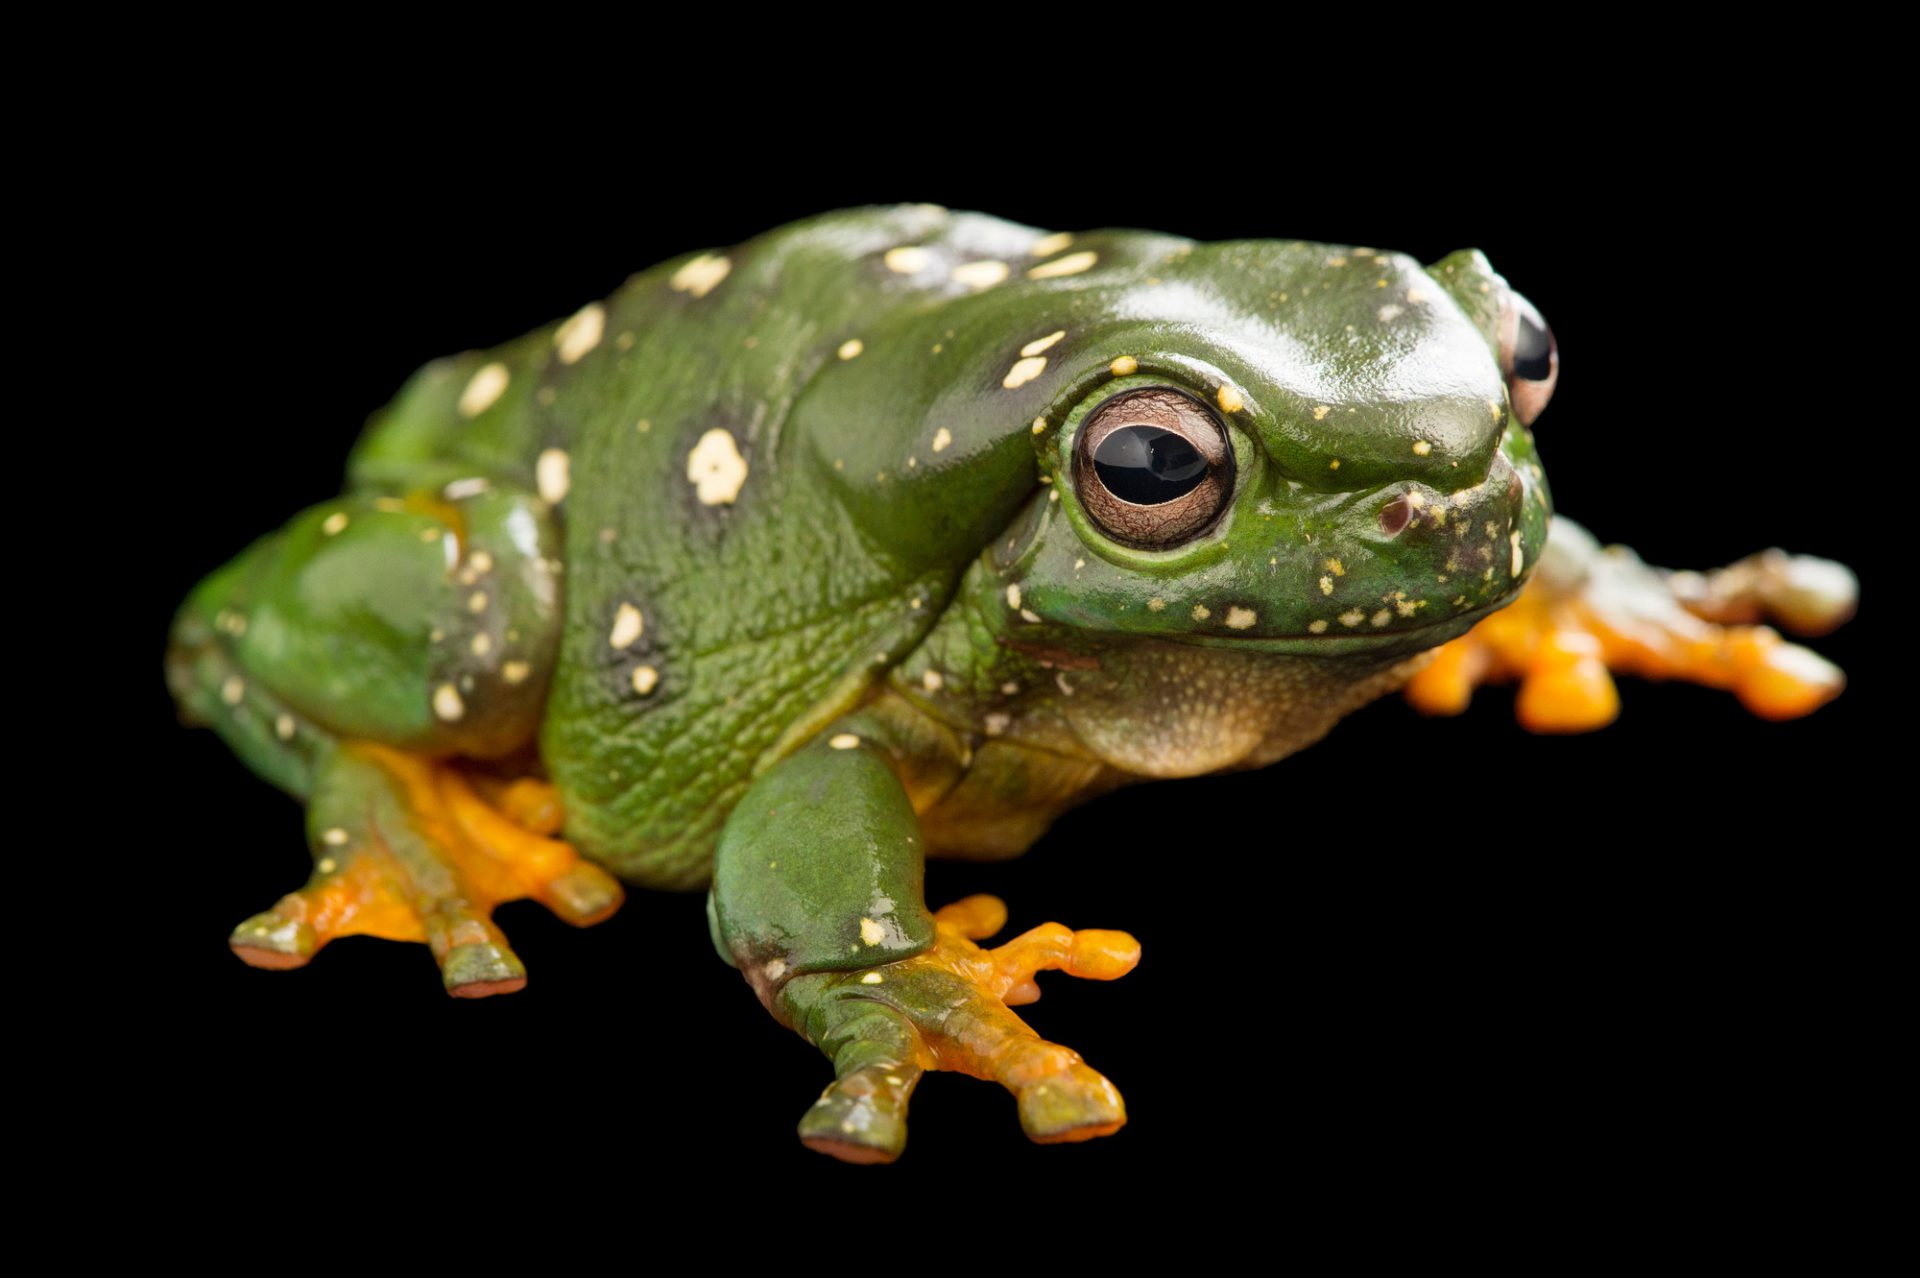 Picture of a magnificent tree frog (Litoria splendida) at the Healesville Sanctuary.